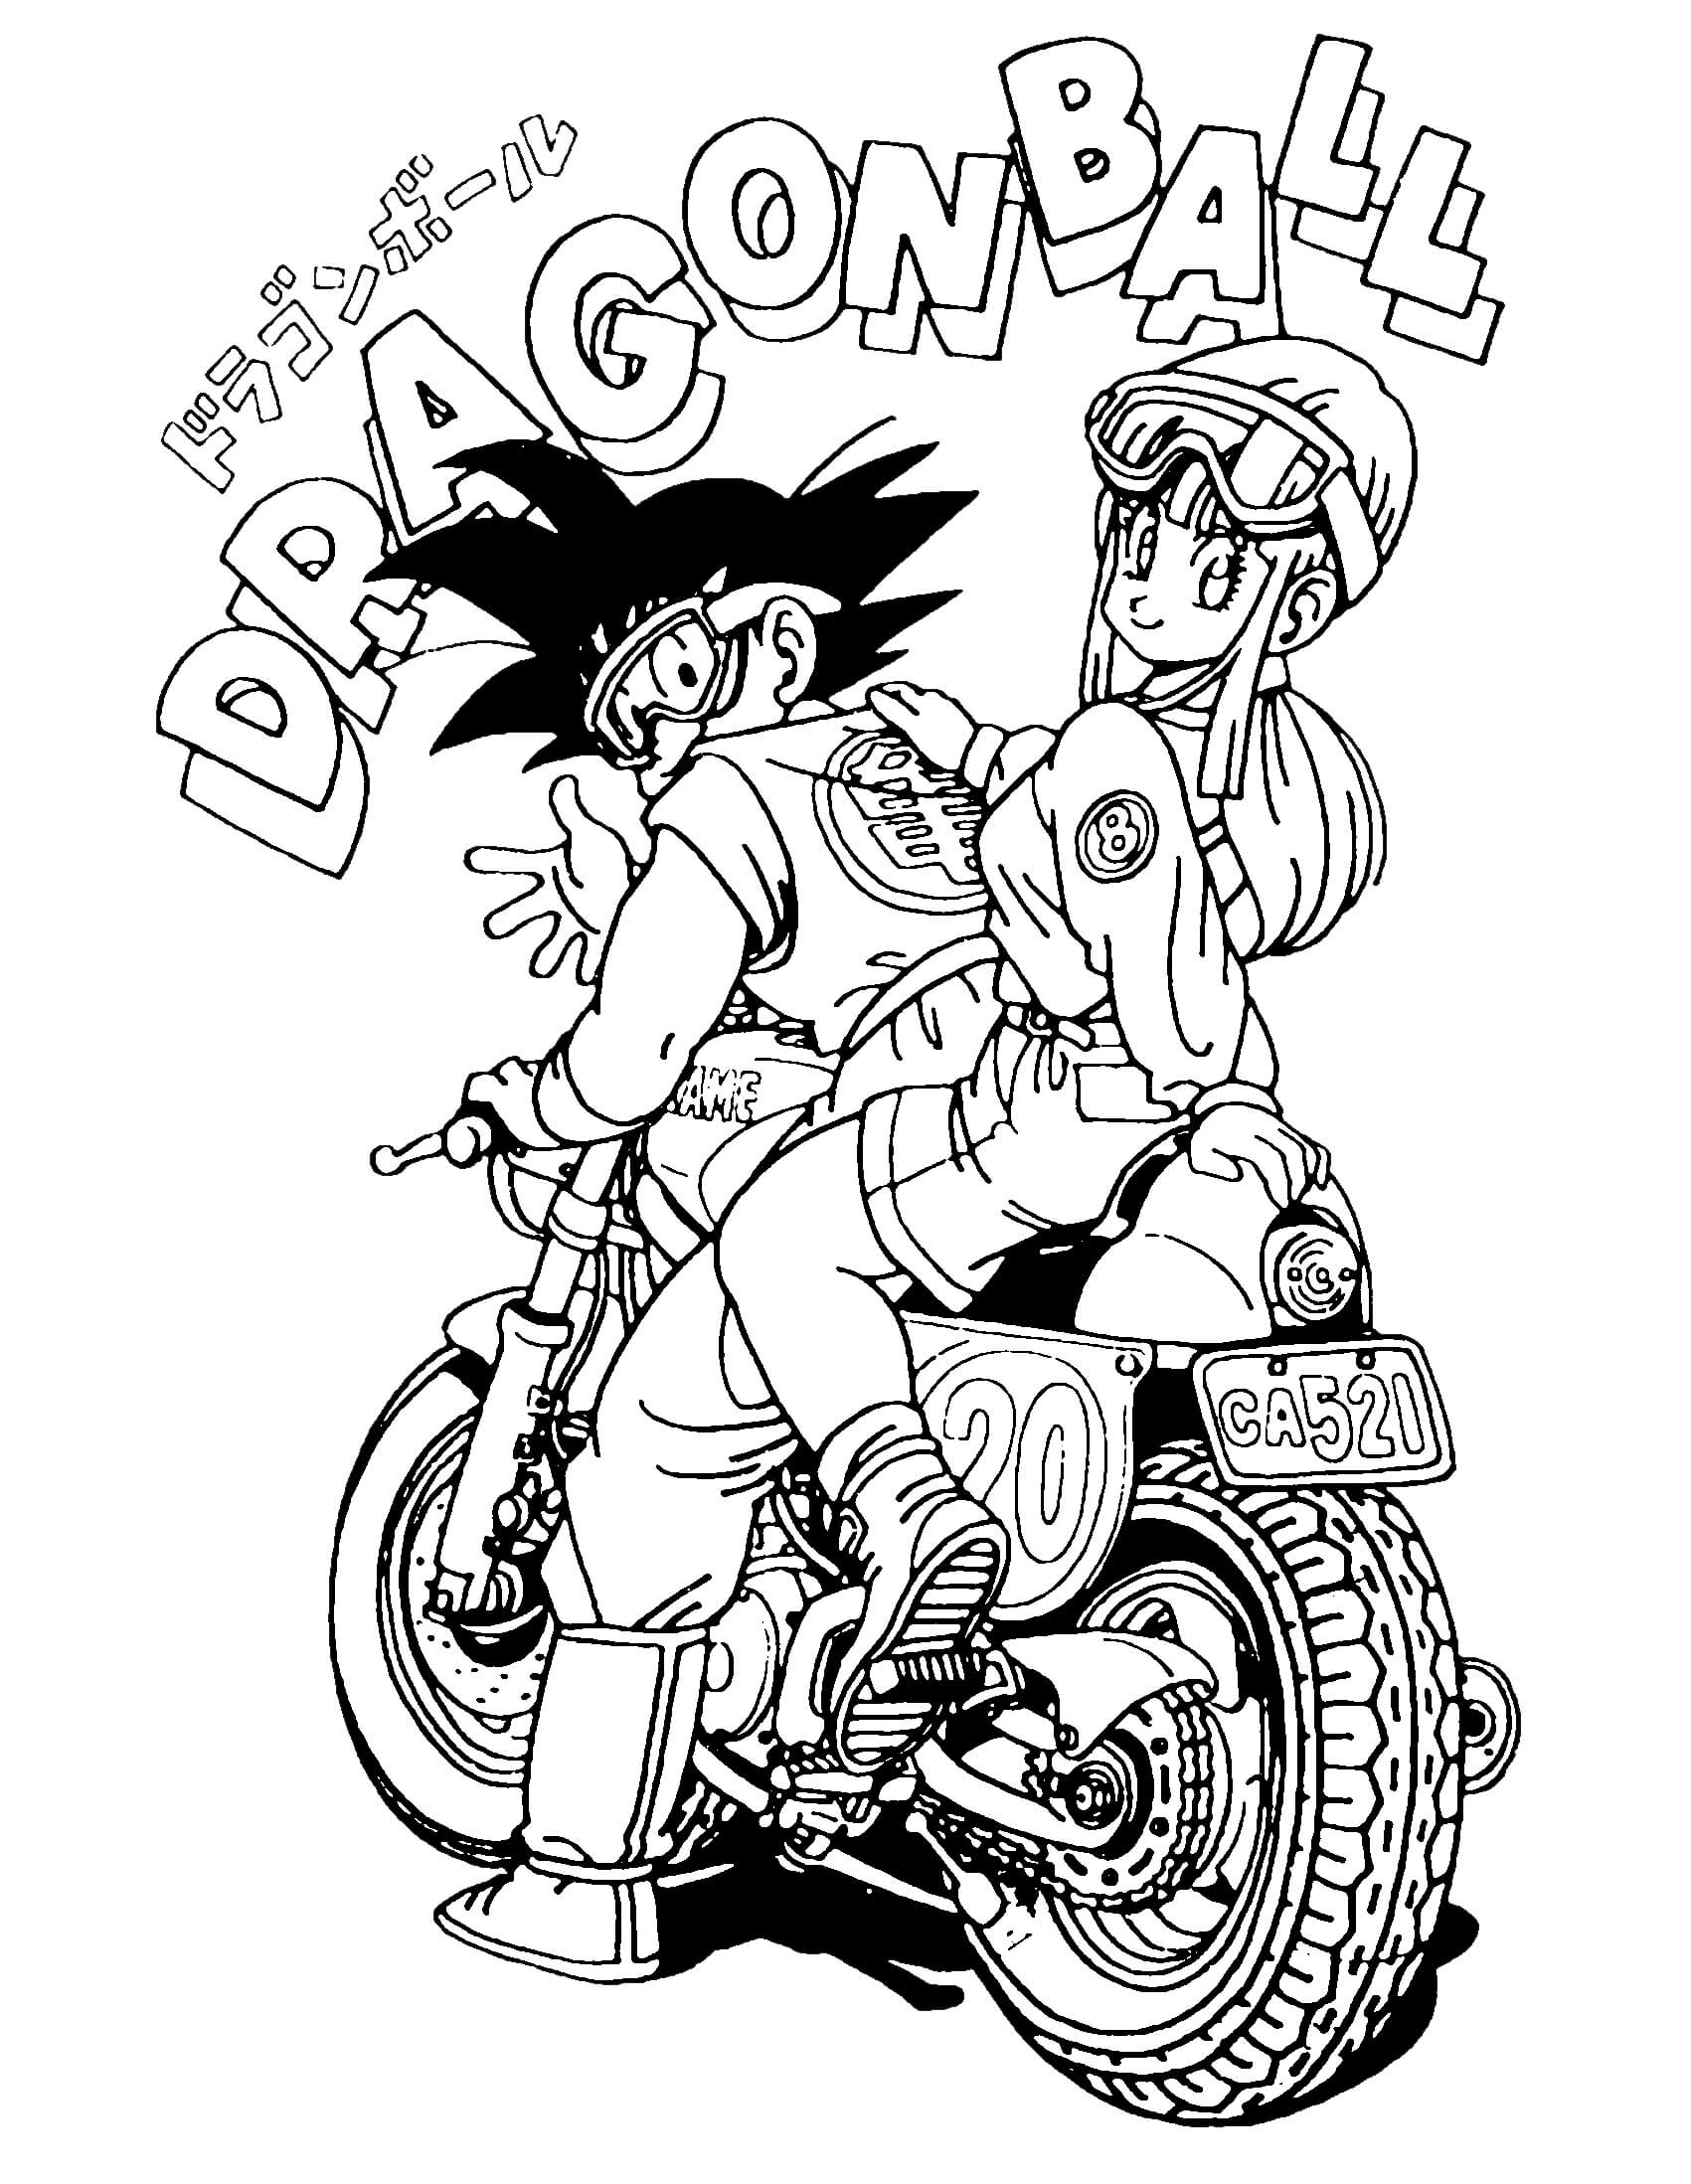 Dragon ball gratuit 3 coloriage dragon ball z - Coloriage gratuit dragon ball z ...